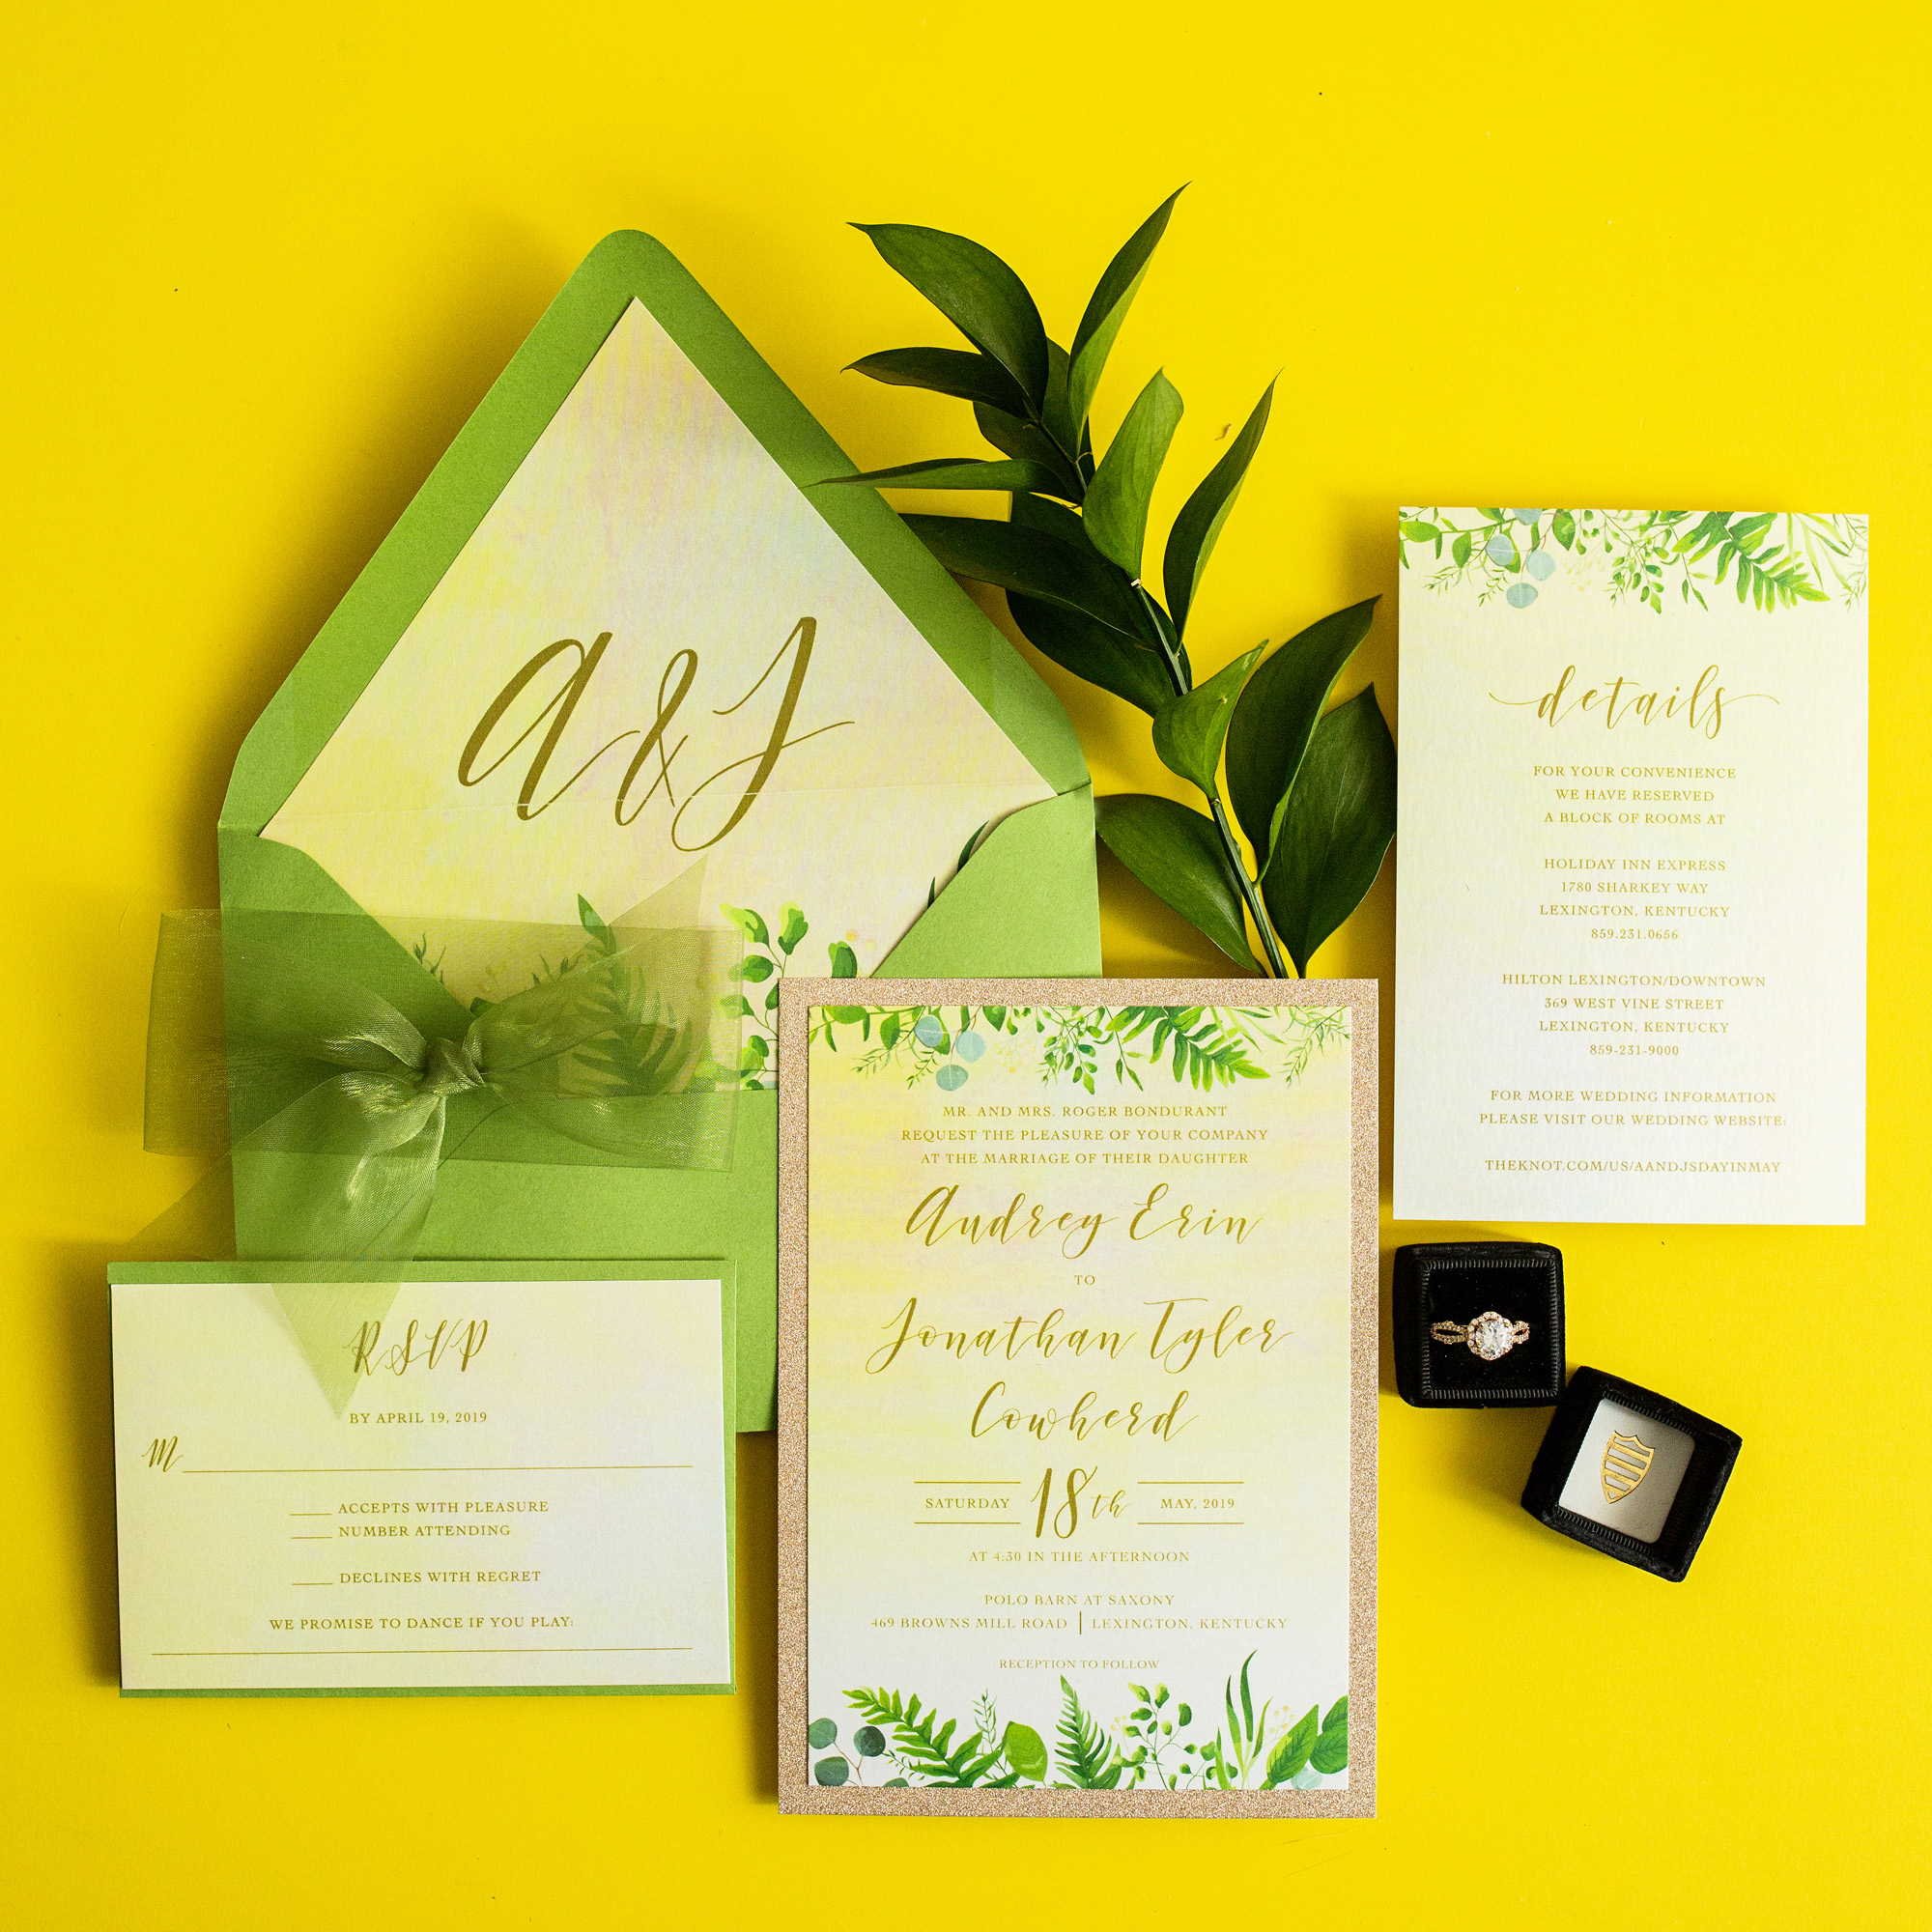 Seriously_Sabrina_Photography_Commercial_Simply_Done_Invites_2019_March_131